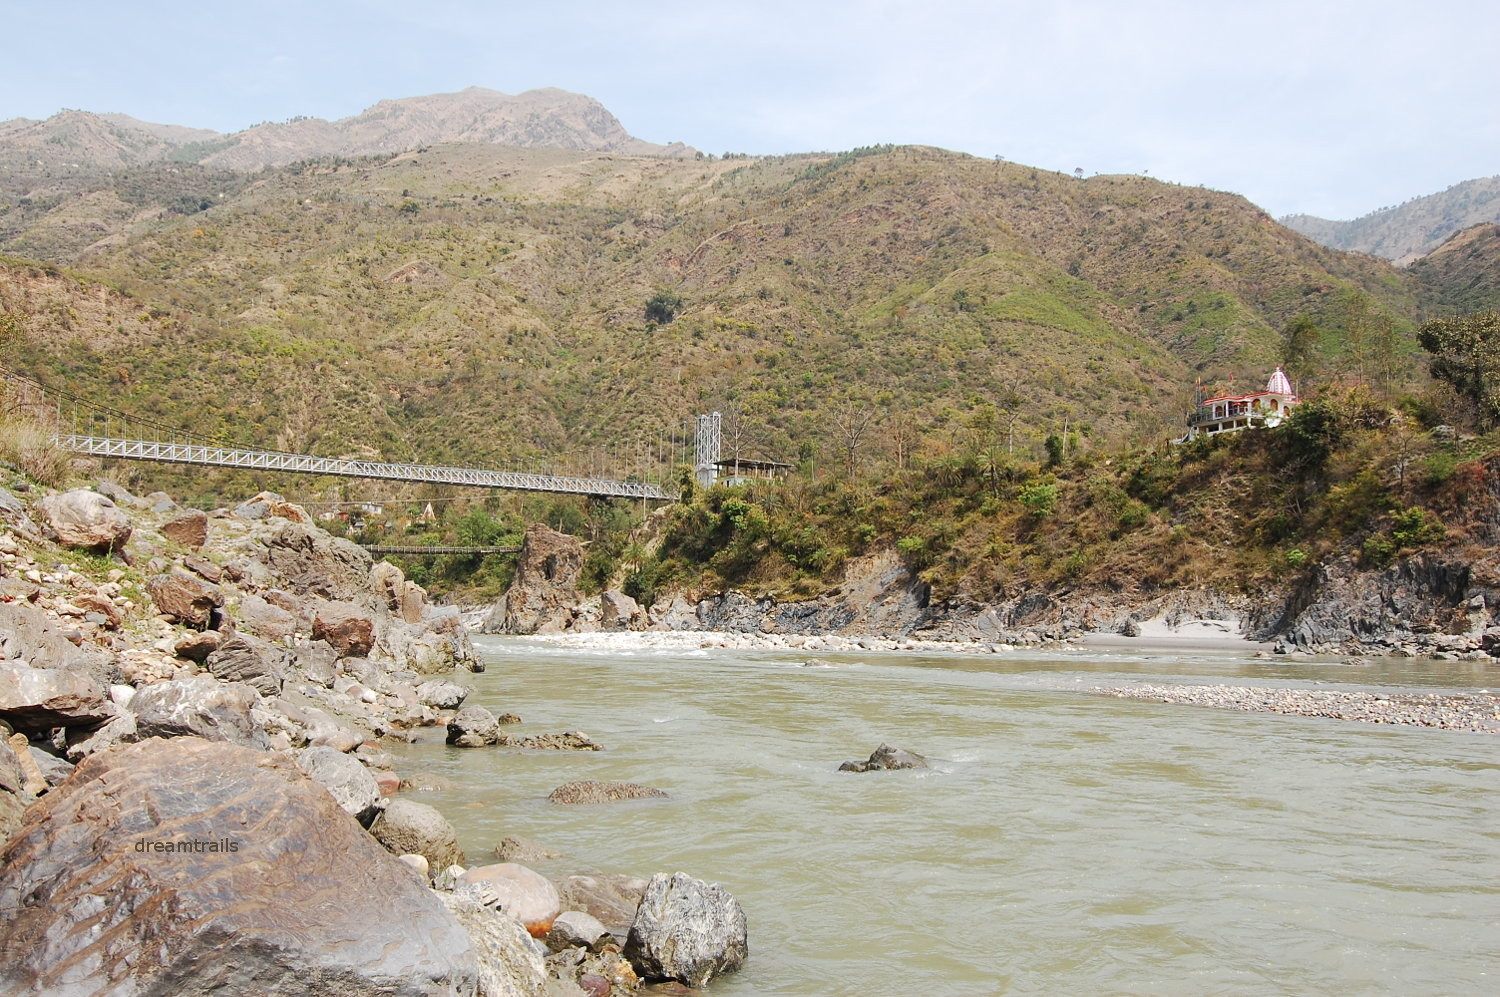 Hanging Bridge over River Sutlej, Tattapani / Tatta Pani